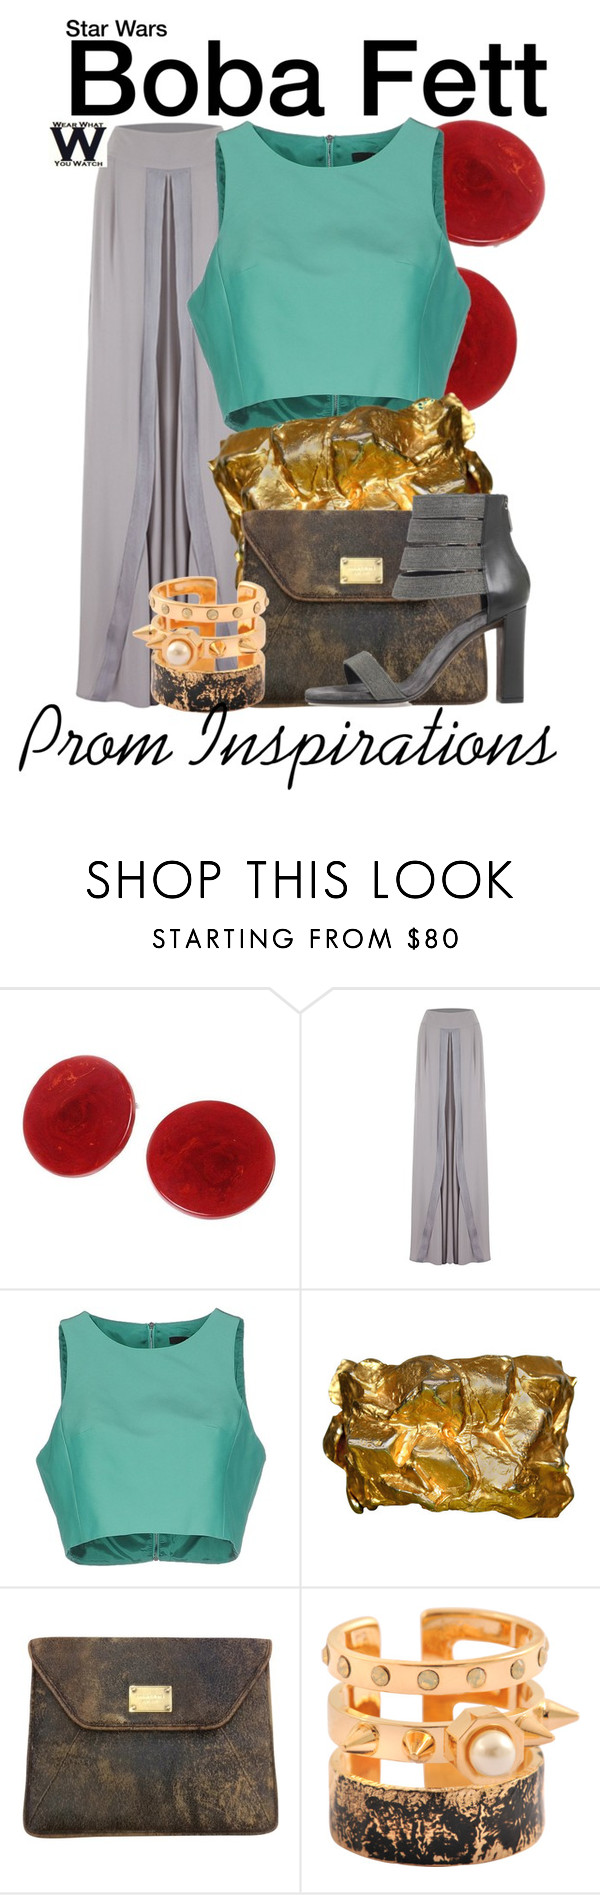 """""""Star Wars - Prom Inspirations"""" by wearwhatyouwatch ❤ liked on Polyvore featuring TIBI, Michael Kors, Maria Francesca Pepe, Brunello Cucinelli, Prom, wearwhatyouwatch, film, starwars and promfashion"""